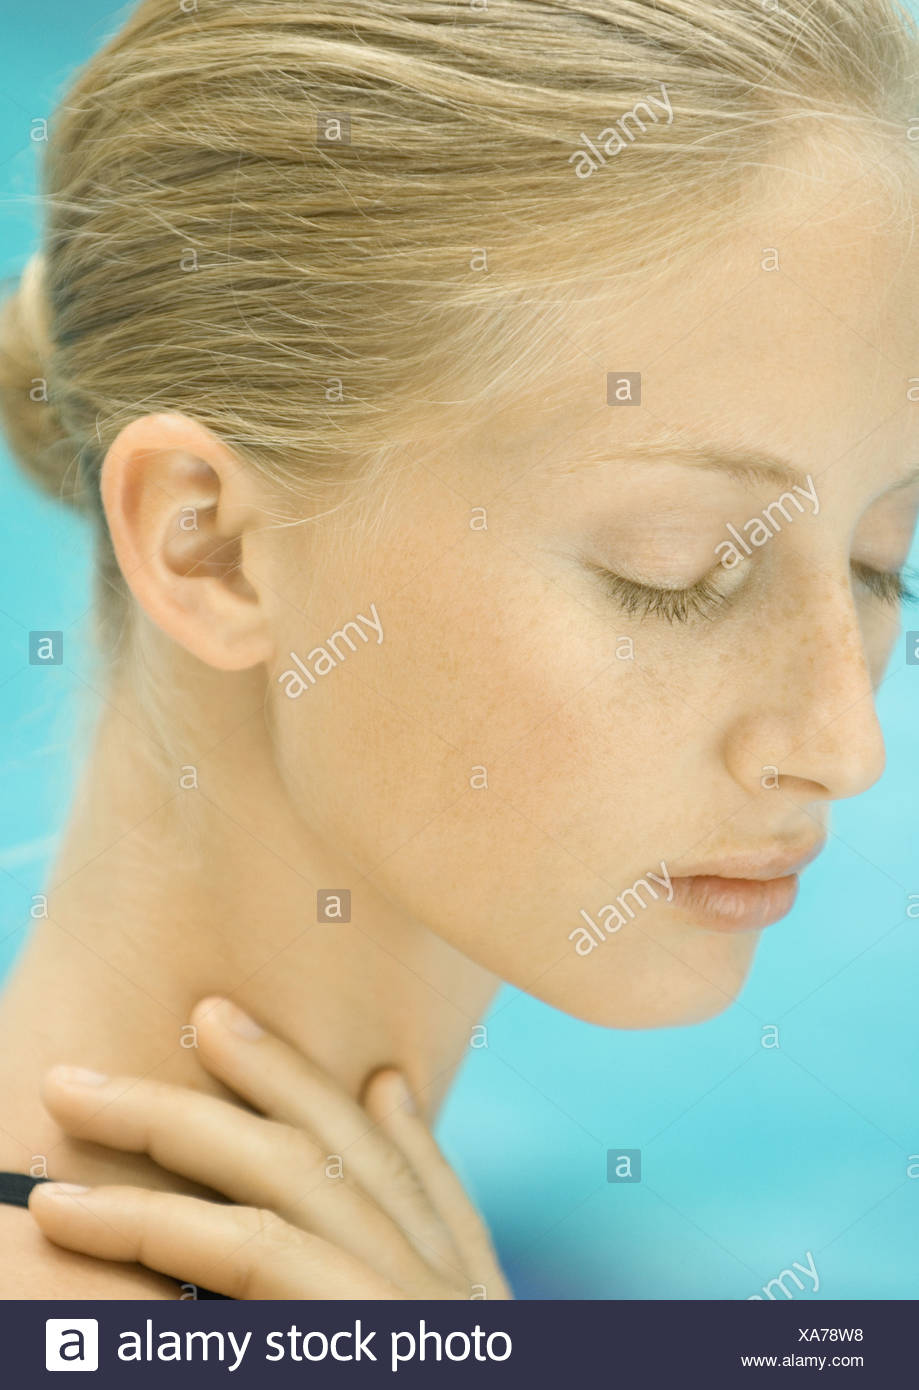 Woman with hand on neck, pool in background - Stock Image